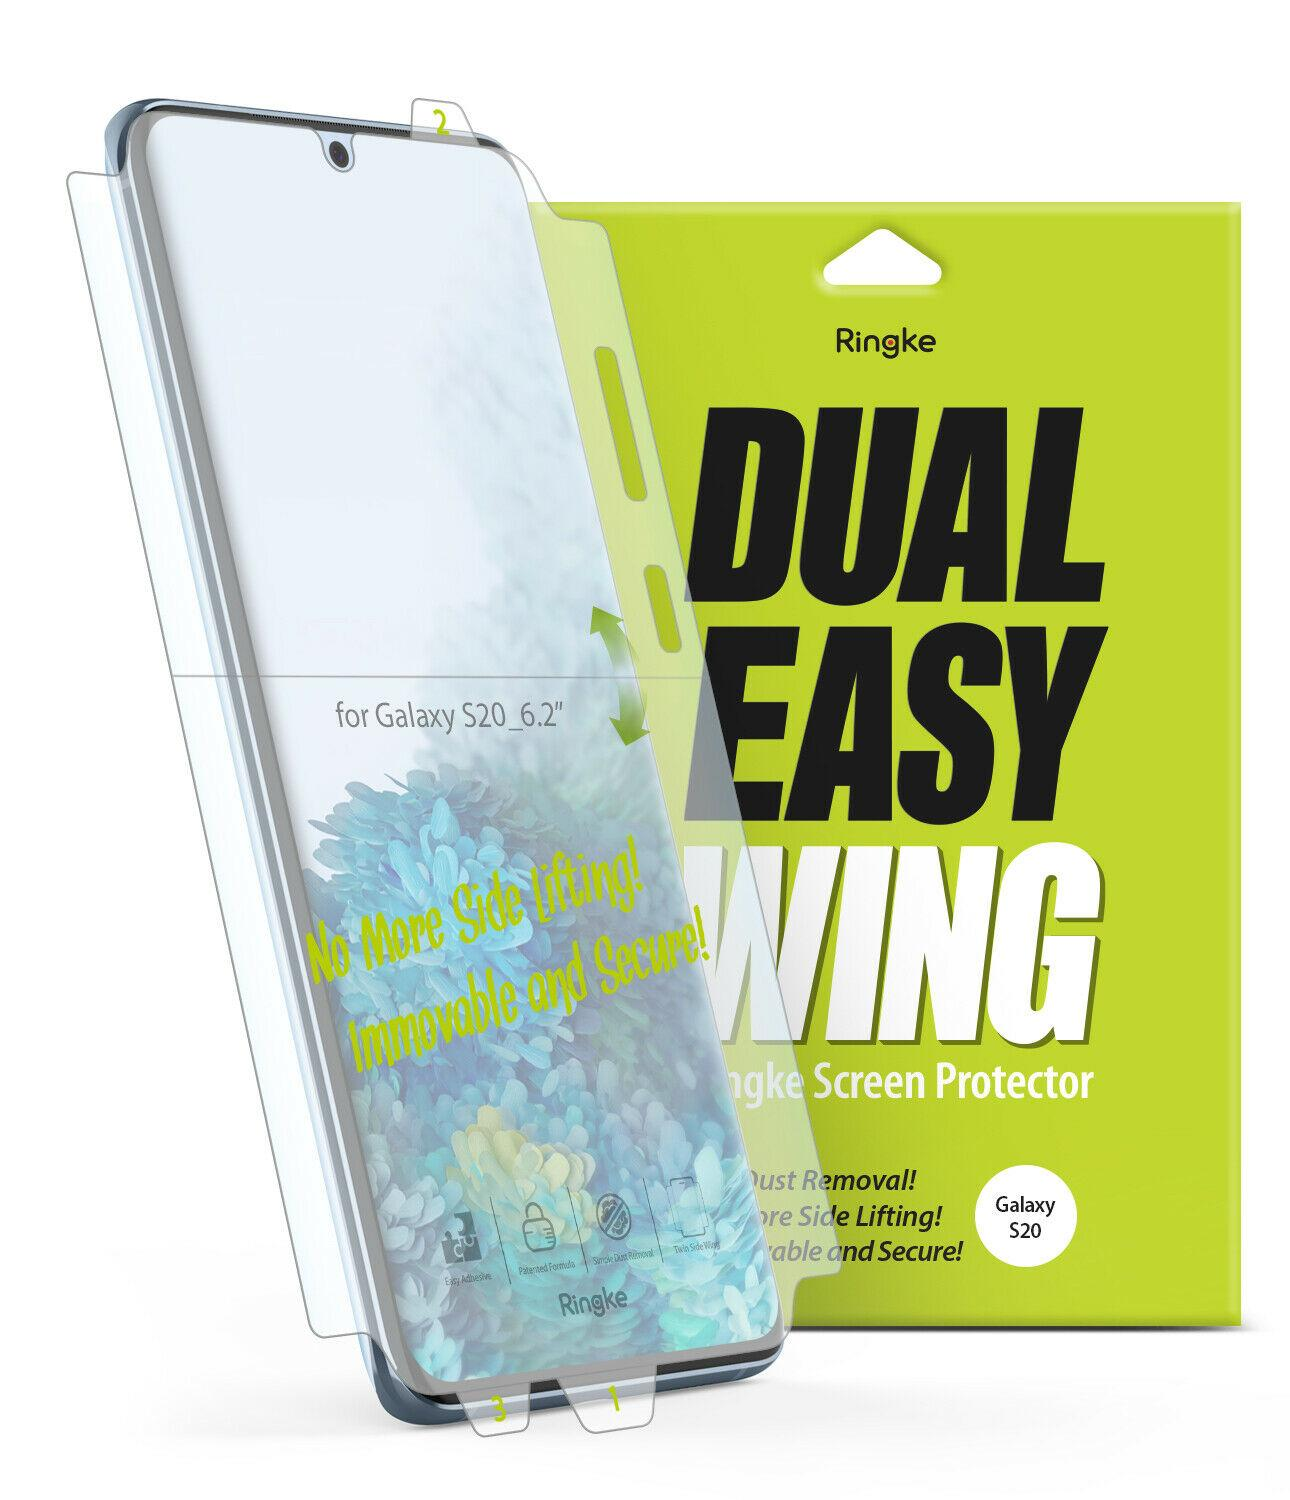 Ringke Phone Screen Protector For Galaxy S20 S20 Plus S20 Ultra Dual Easy Wing Film Screen Protector Protective 2-pack